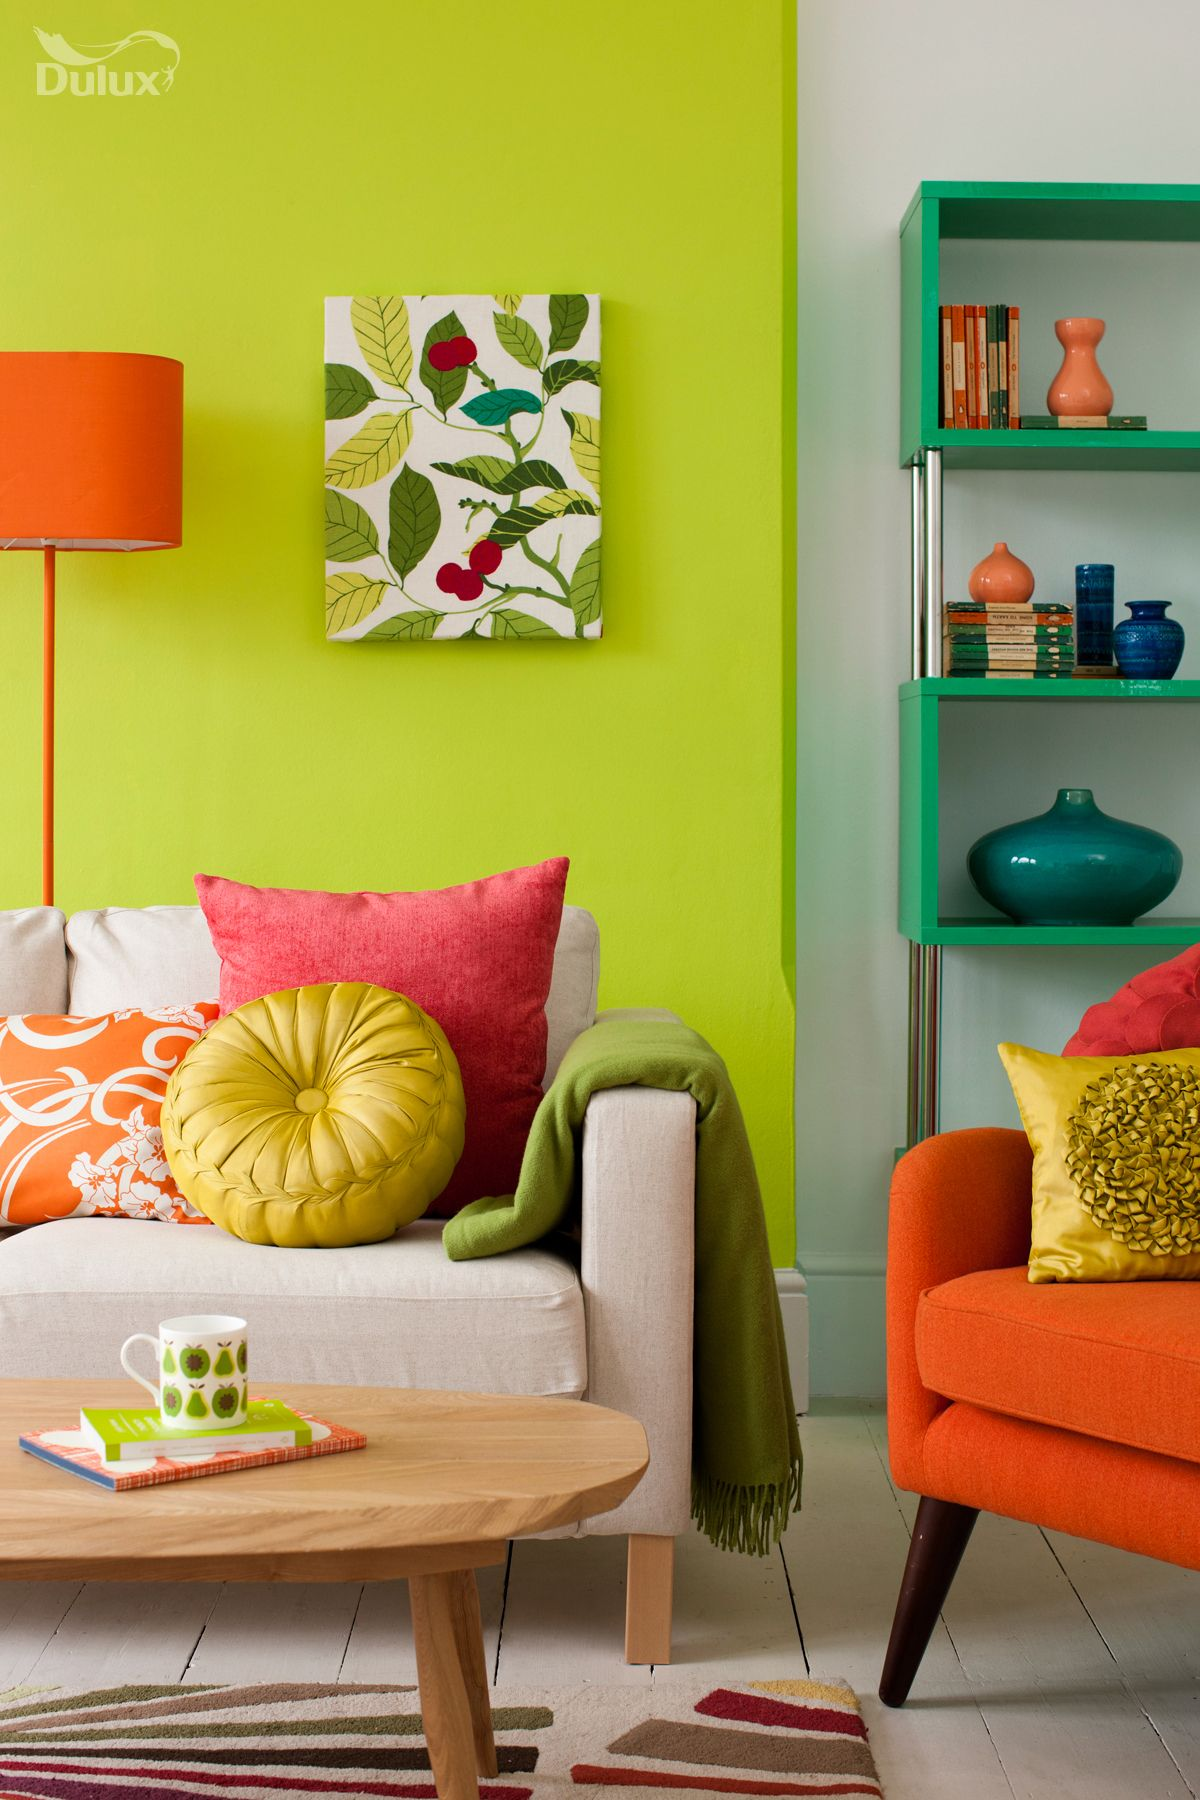 Lime green paint colors - For Dynamic Results Blend The Colours From Our Natural Surroundings By Combining Enlivening Greens With